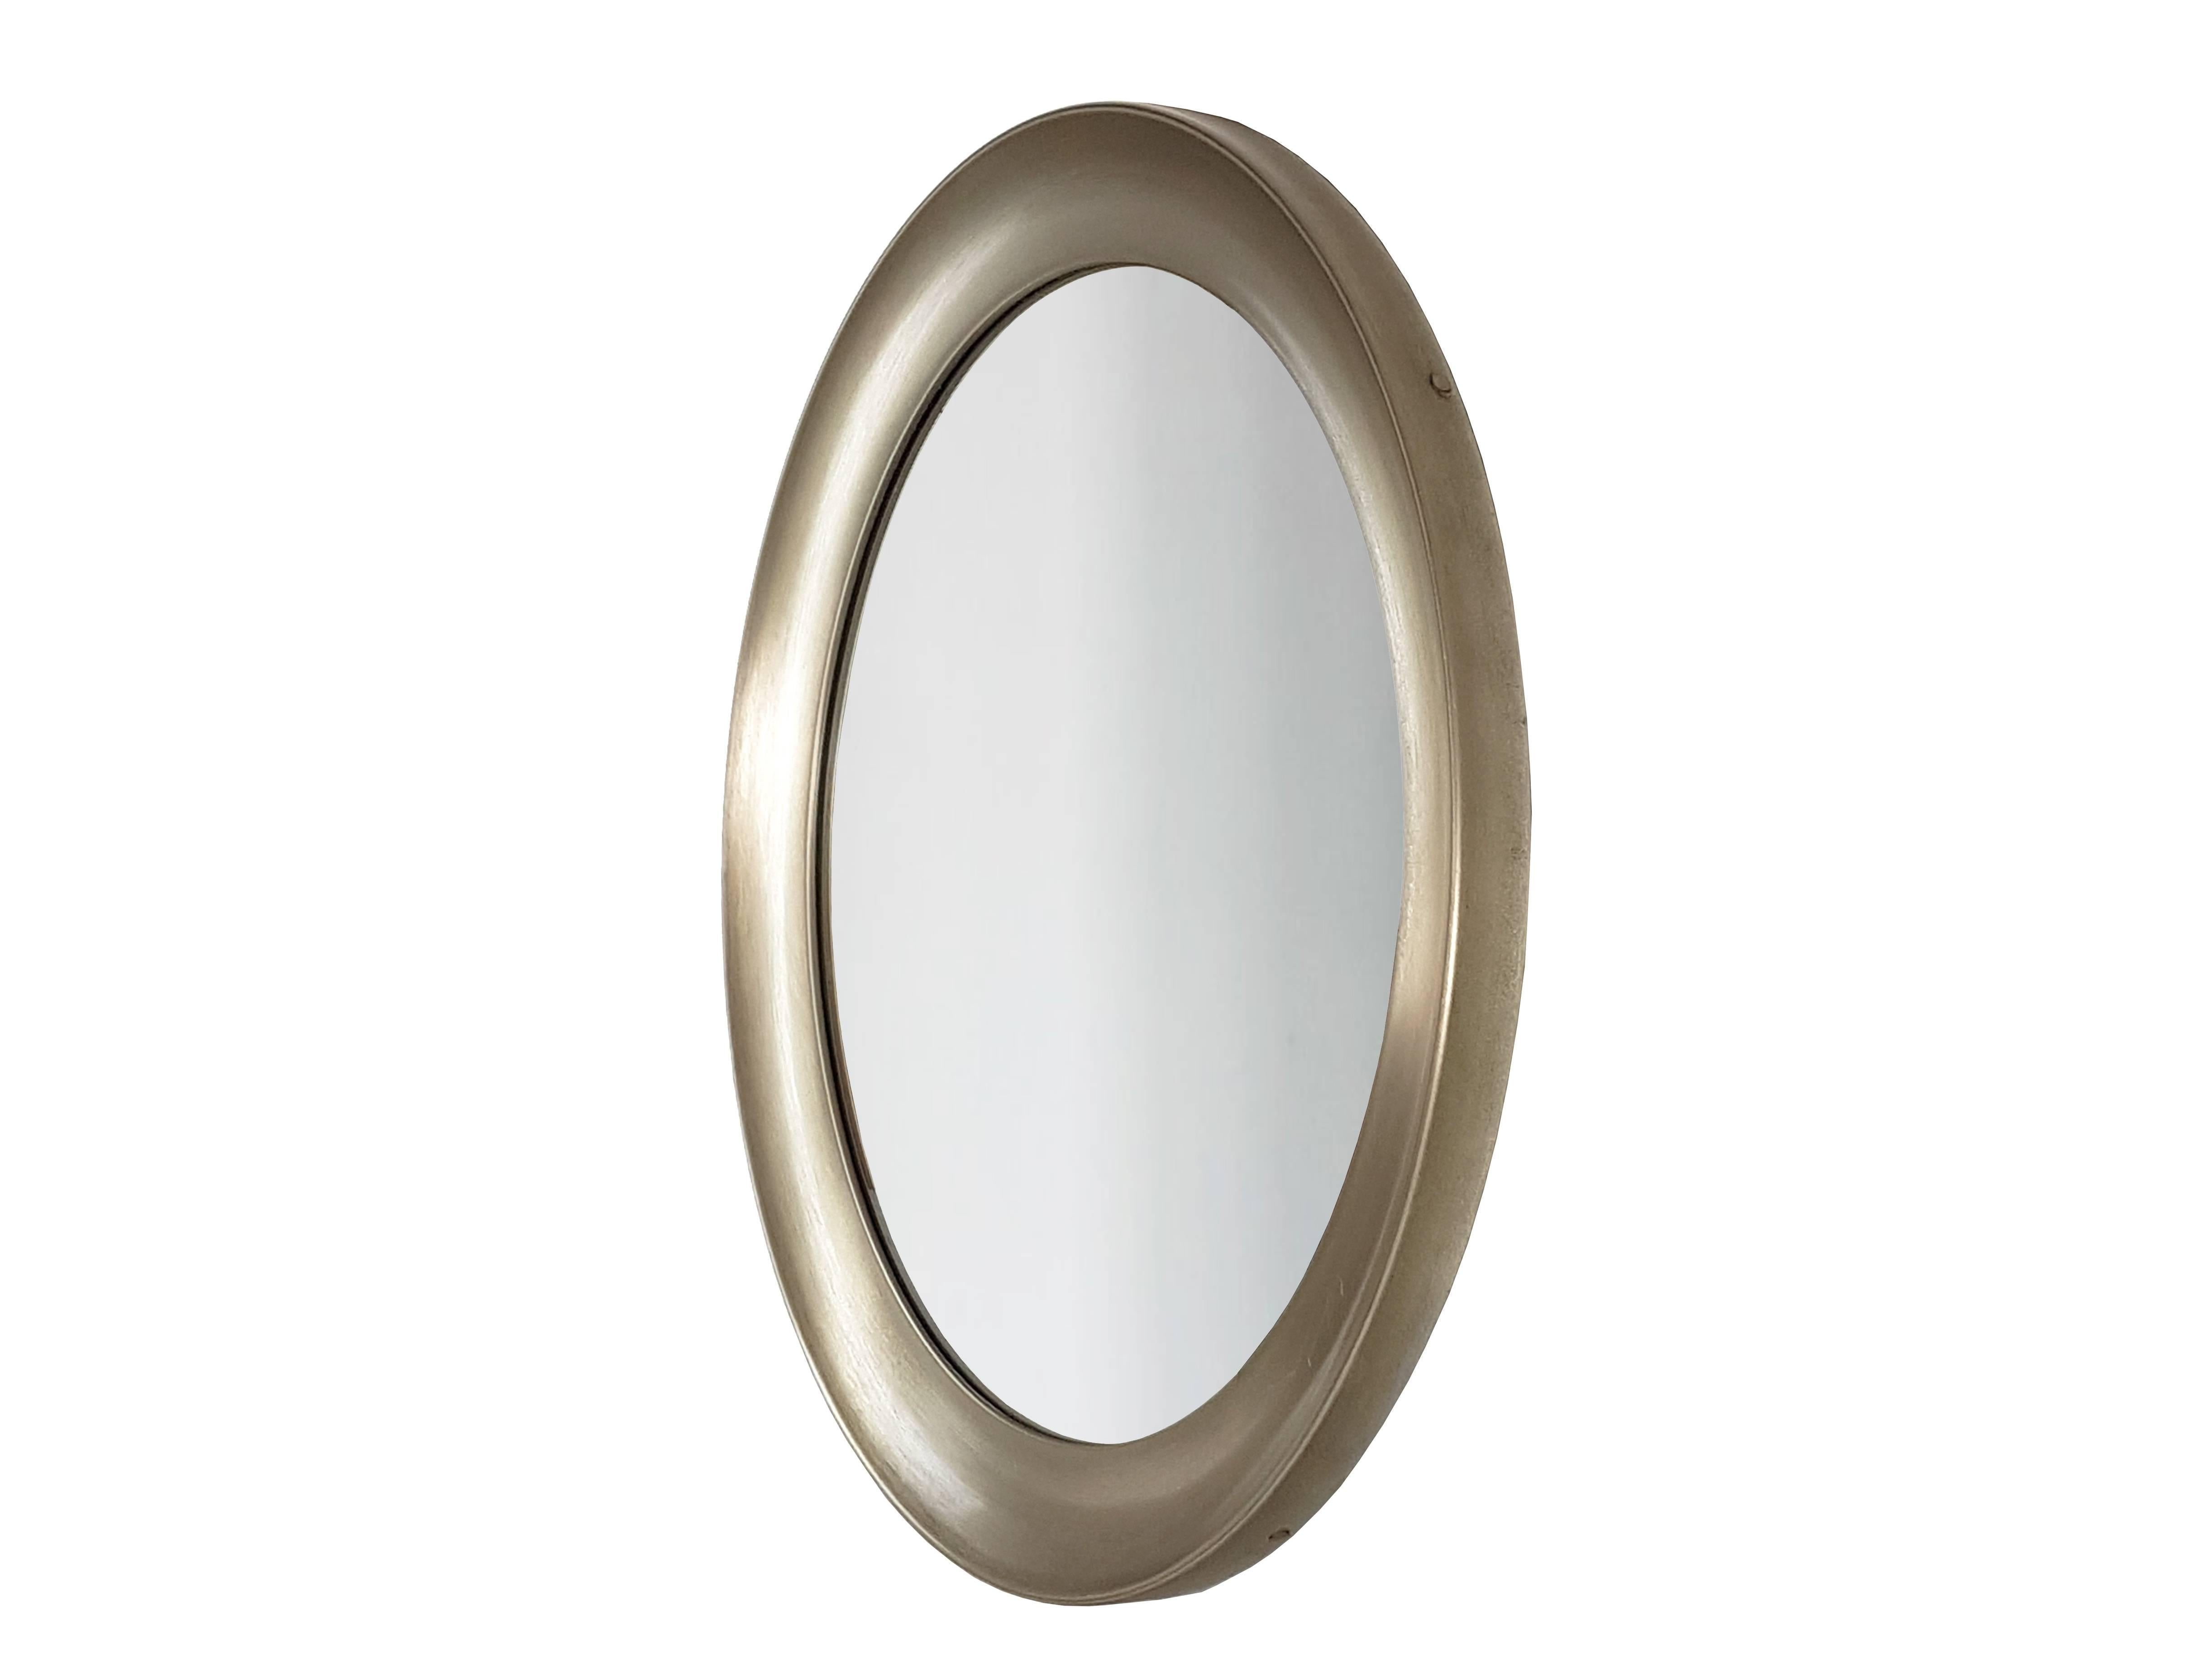 Italian Nickel Plated Brass Round Mirror Narcisso By Sergio Mazza For Artemide At 1stdibs